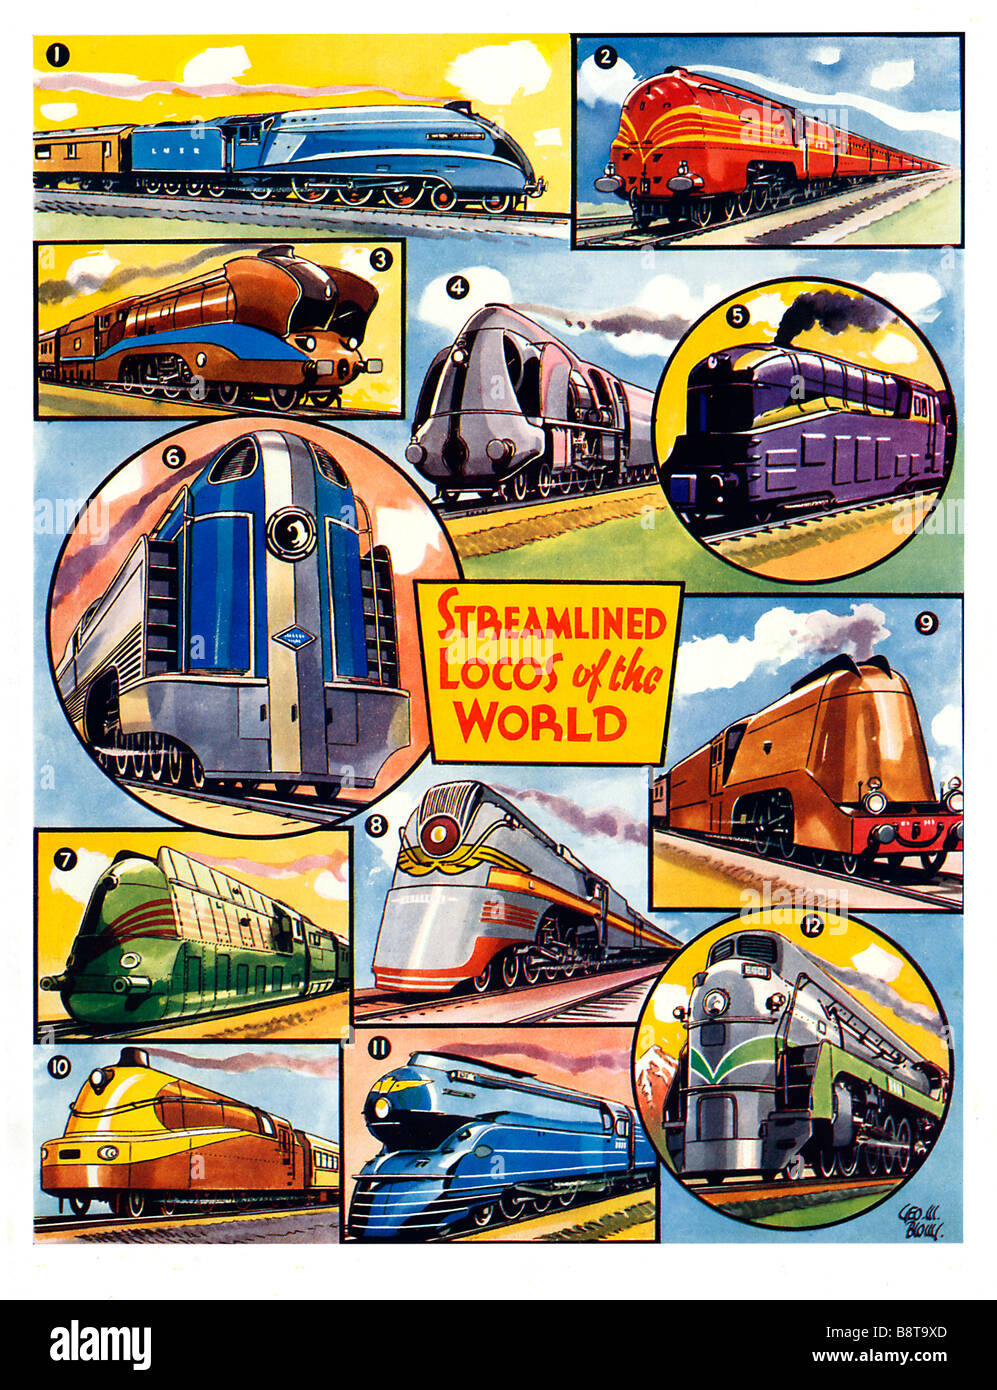 Streamlined Locos Of The World 1941 book illustration of steam engines designed in the streamline style - Stock Image